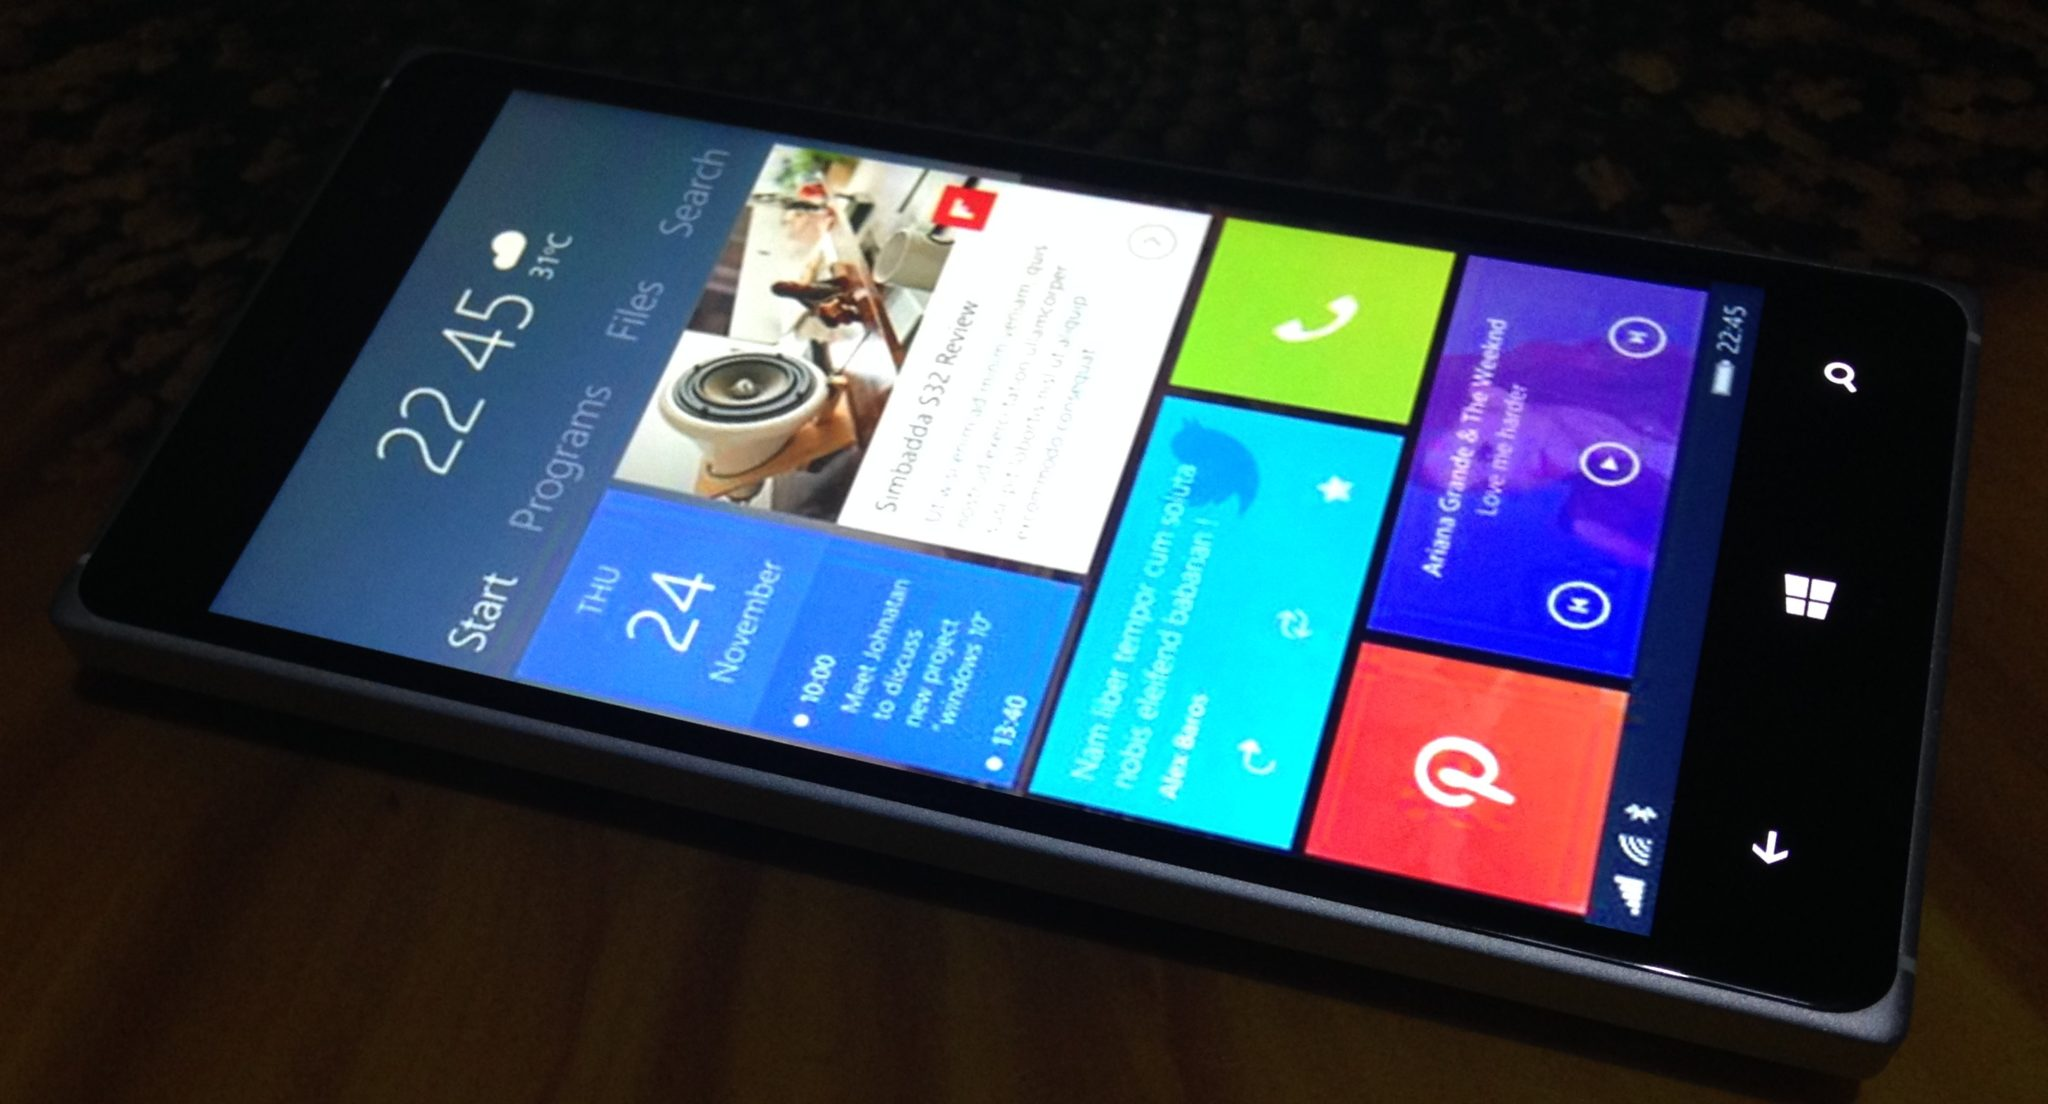 Microsoft to stop push notifications for Windows Phone 7.5 and 8.0